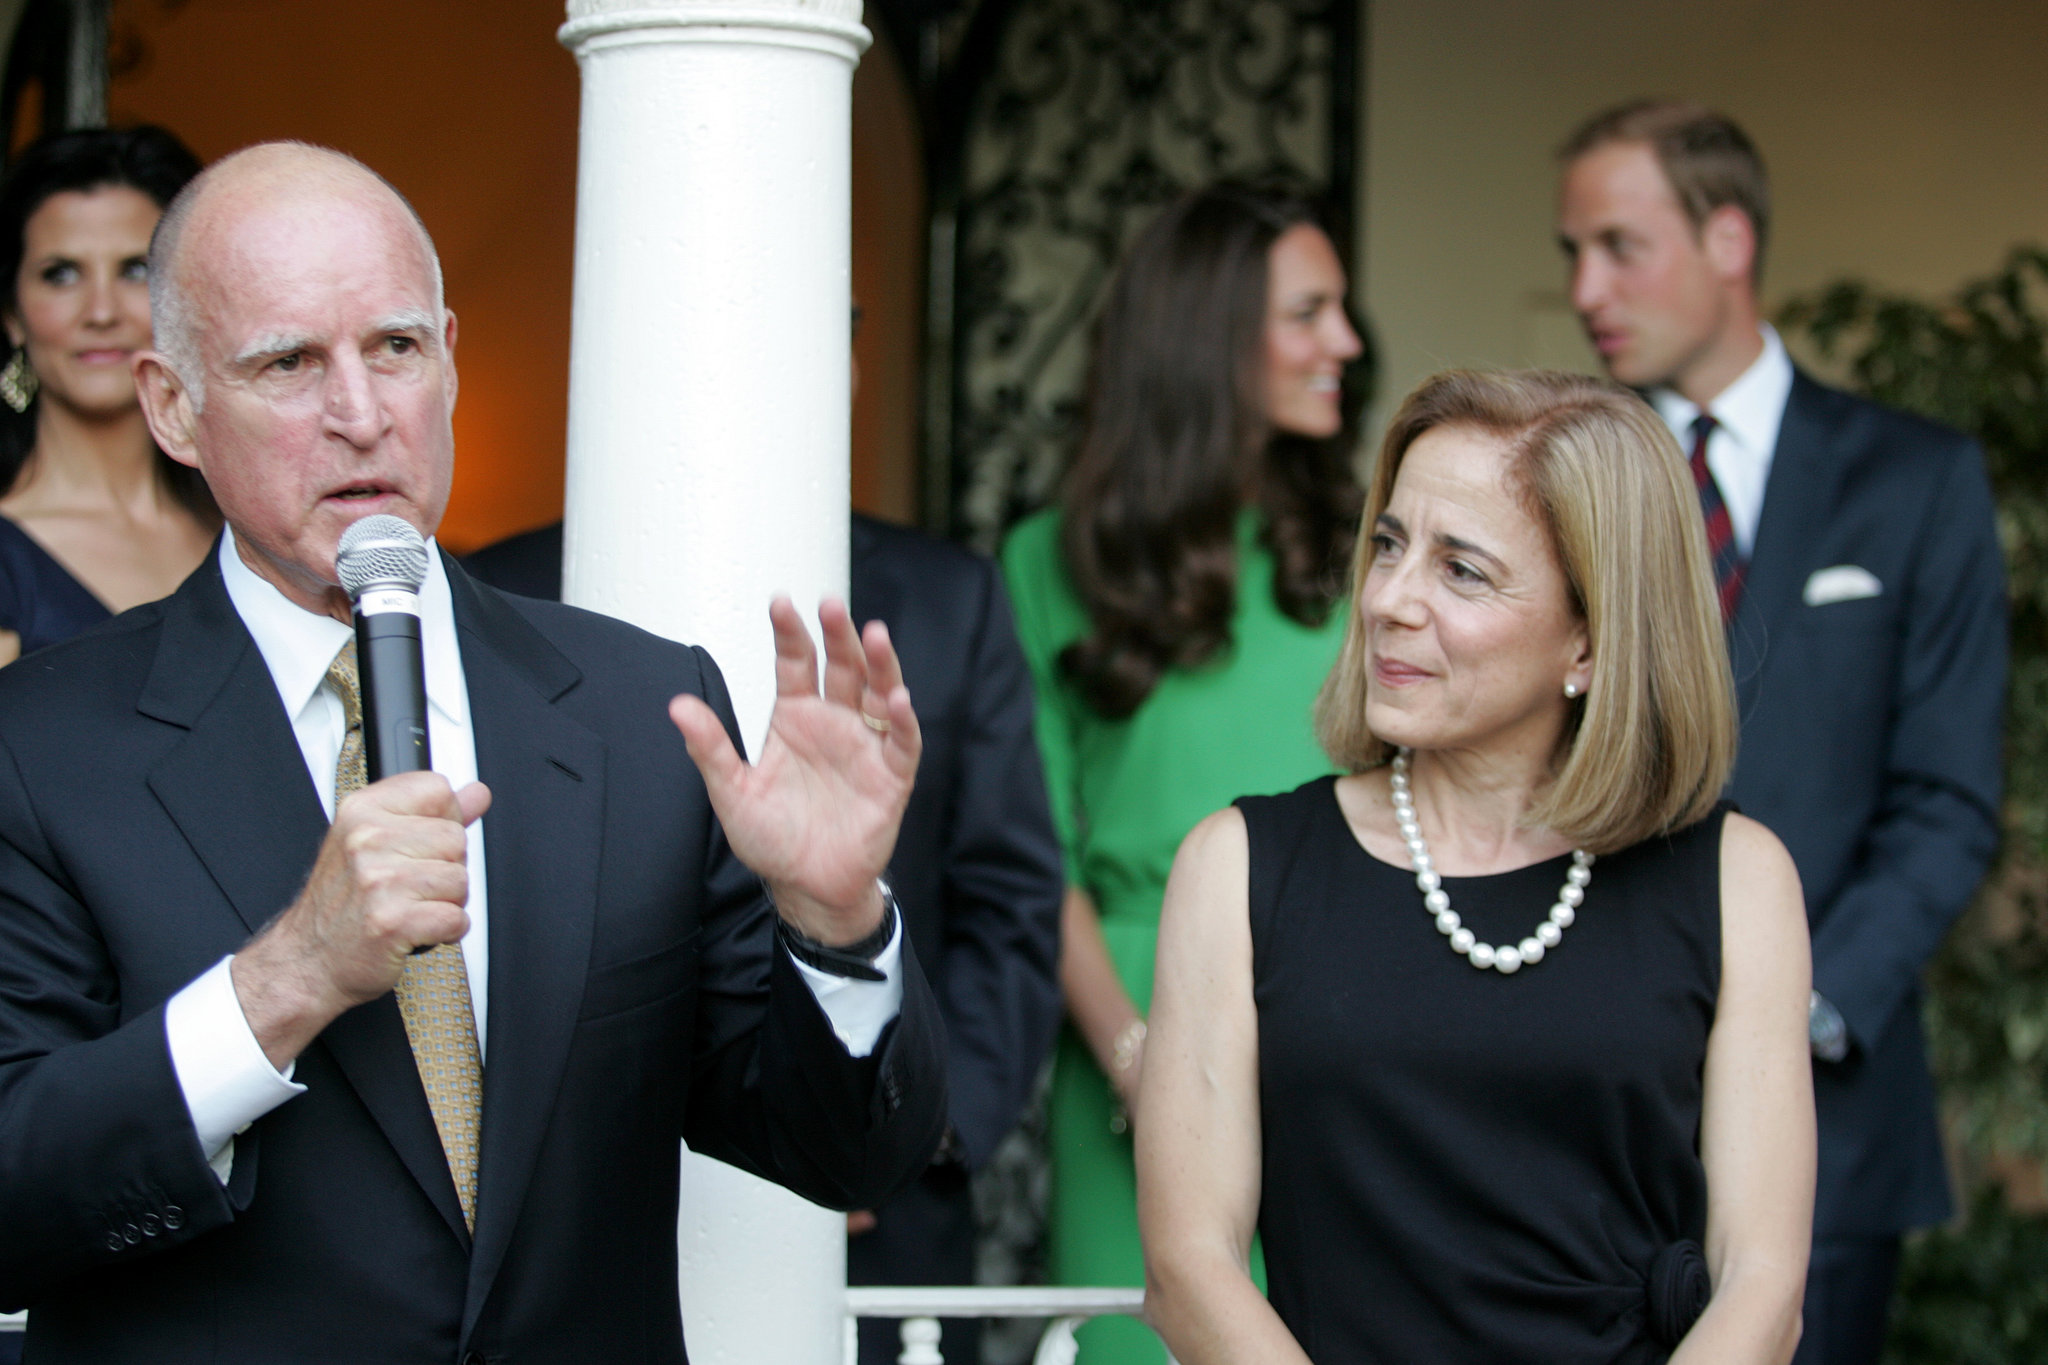 At a Summer 2011 reception with California Governor Jerry Brown, William and Kate seemed to steal a moment alone.